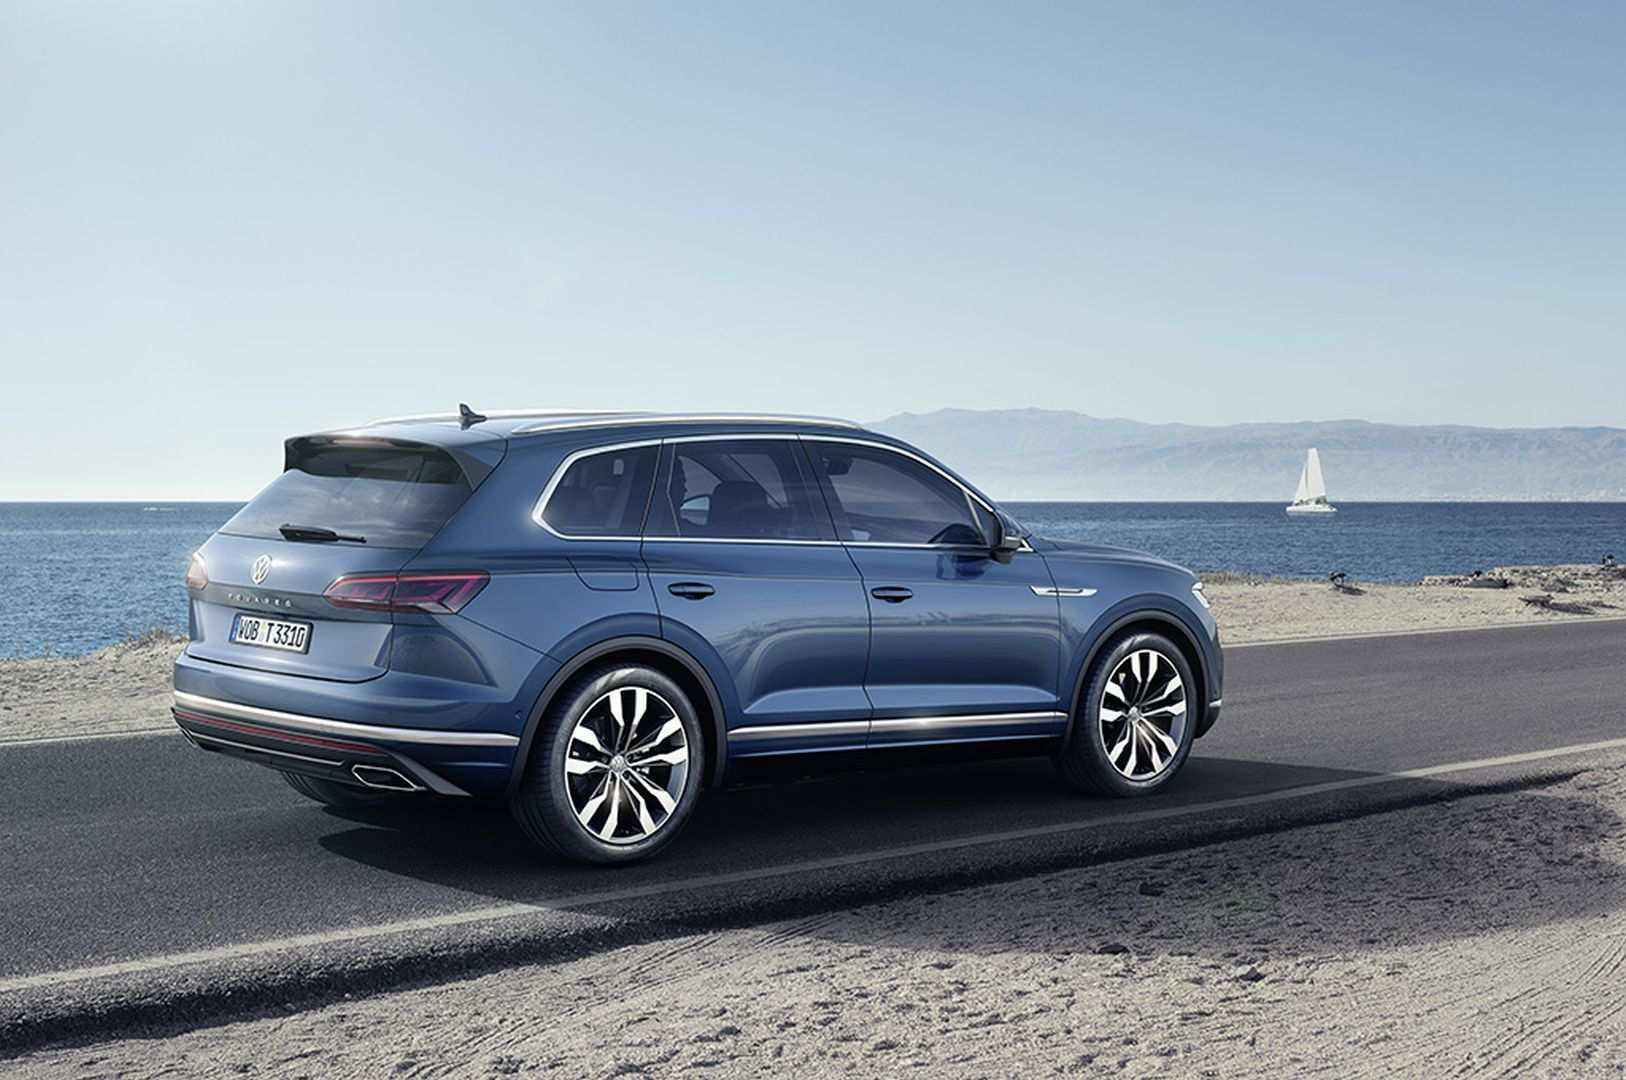 68 All New Volkswagen Touareg 2020 Dimensions Exterior for Volkswagen Touareg 2020 Dimensions